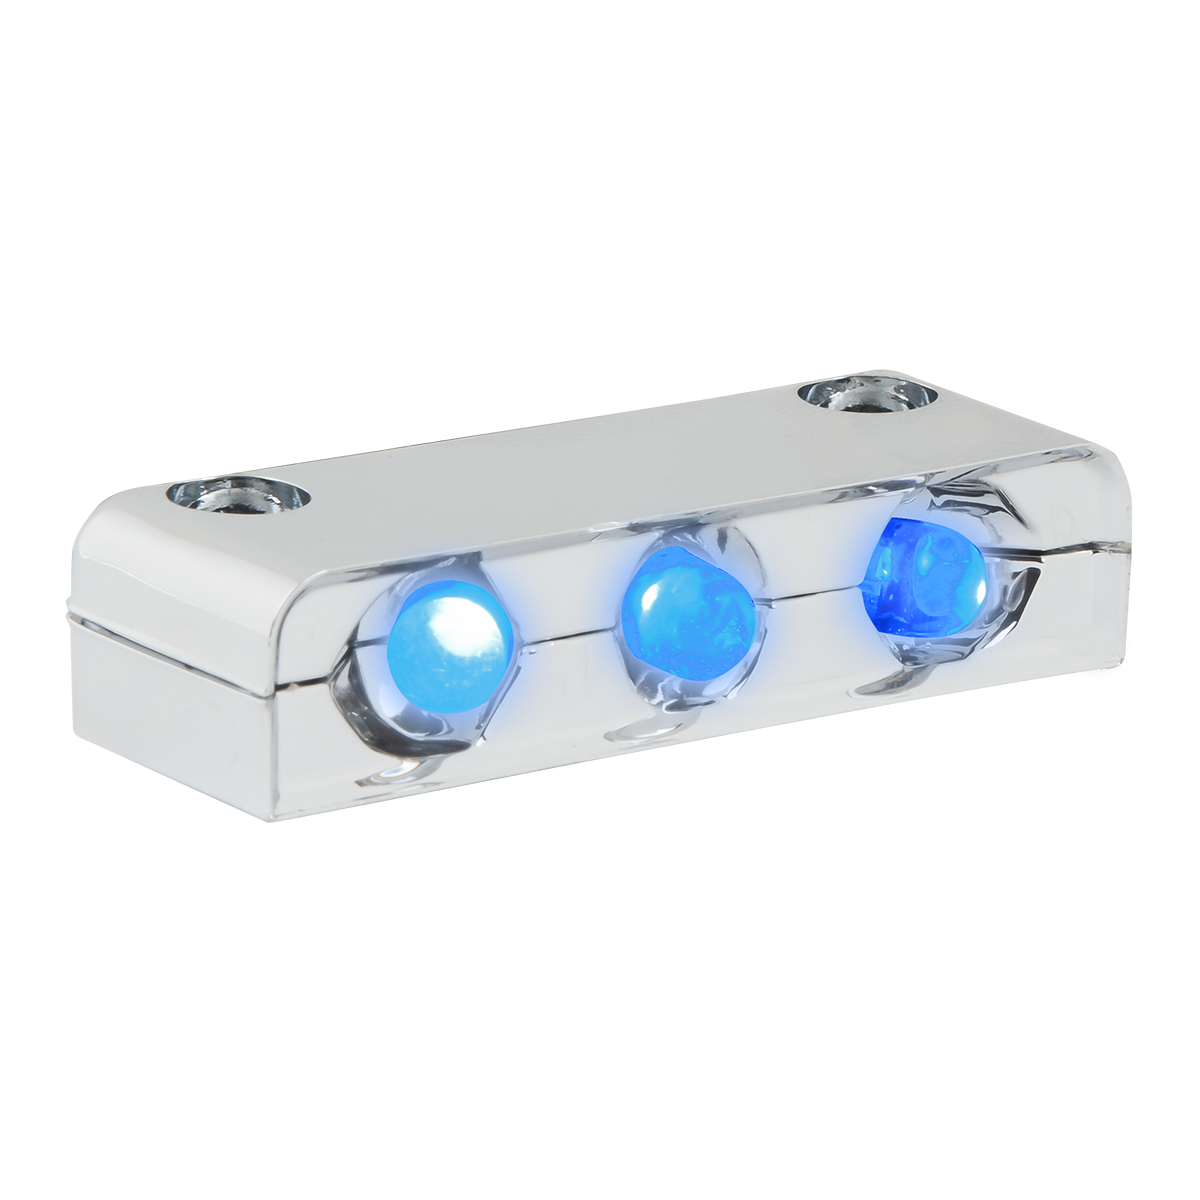 76401 Blue 3 LED Step Light w/ Chrome Housing